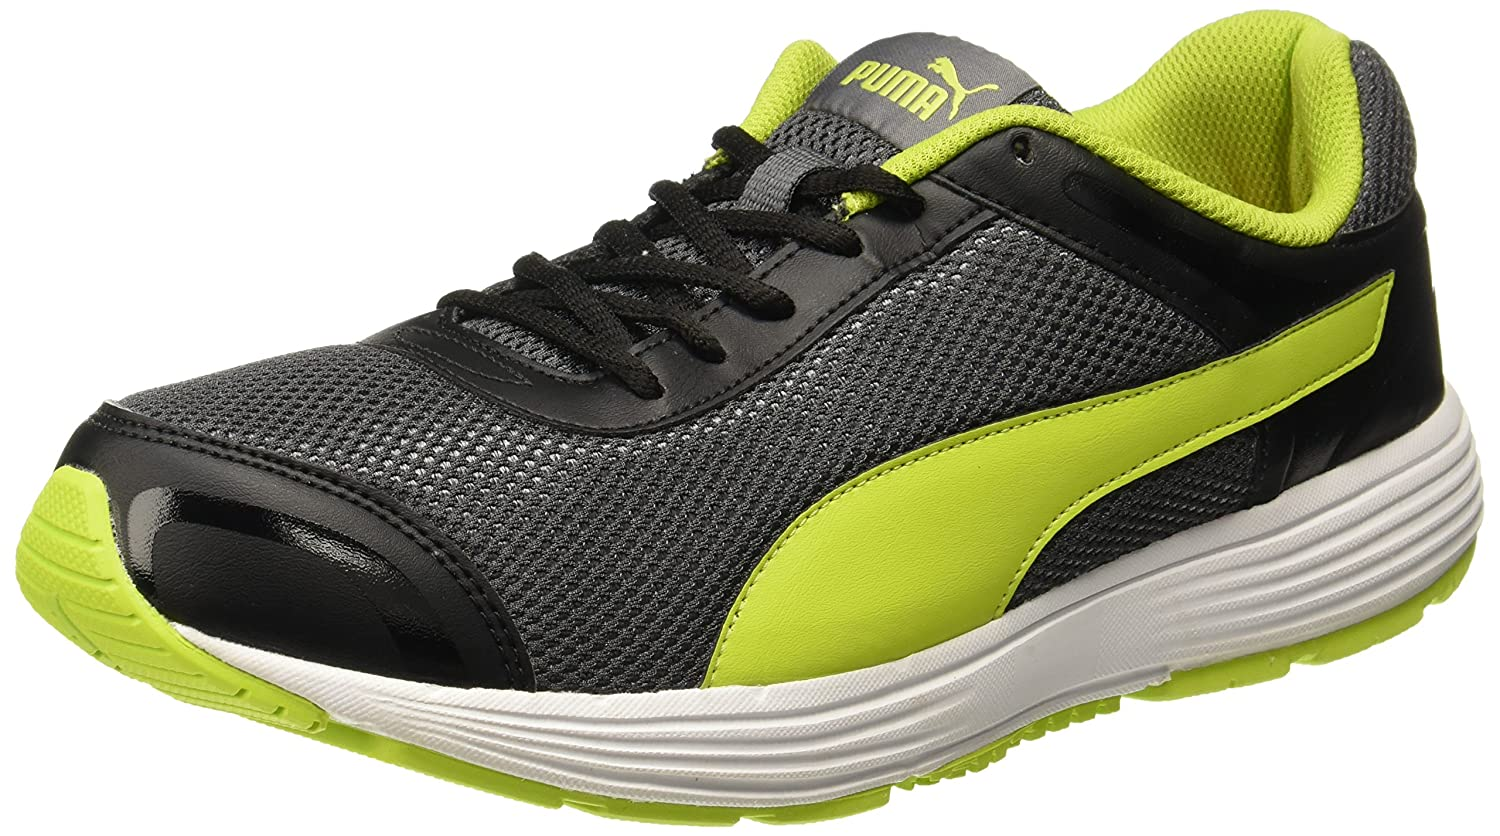 959ac1988be Puma Men s Ceres IDP Running Shoes  Buy Online at Low Prices in India -  Amazon.in